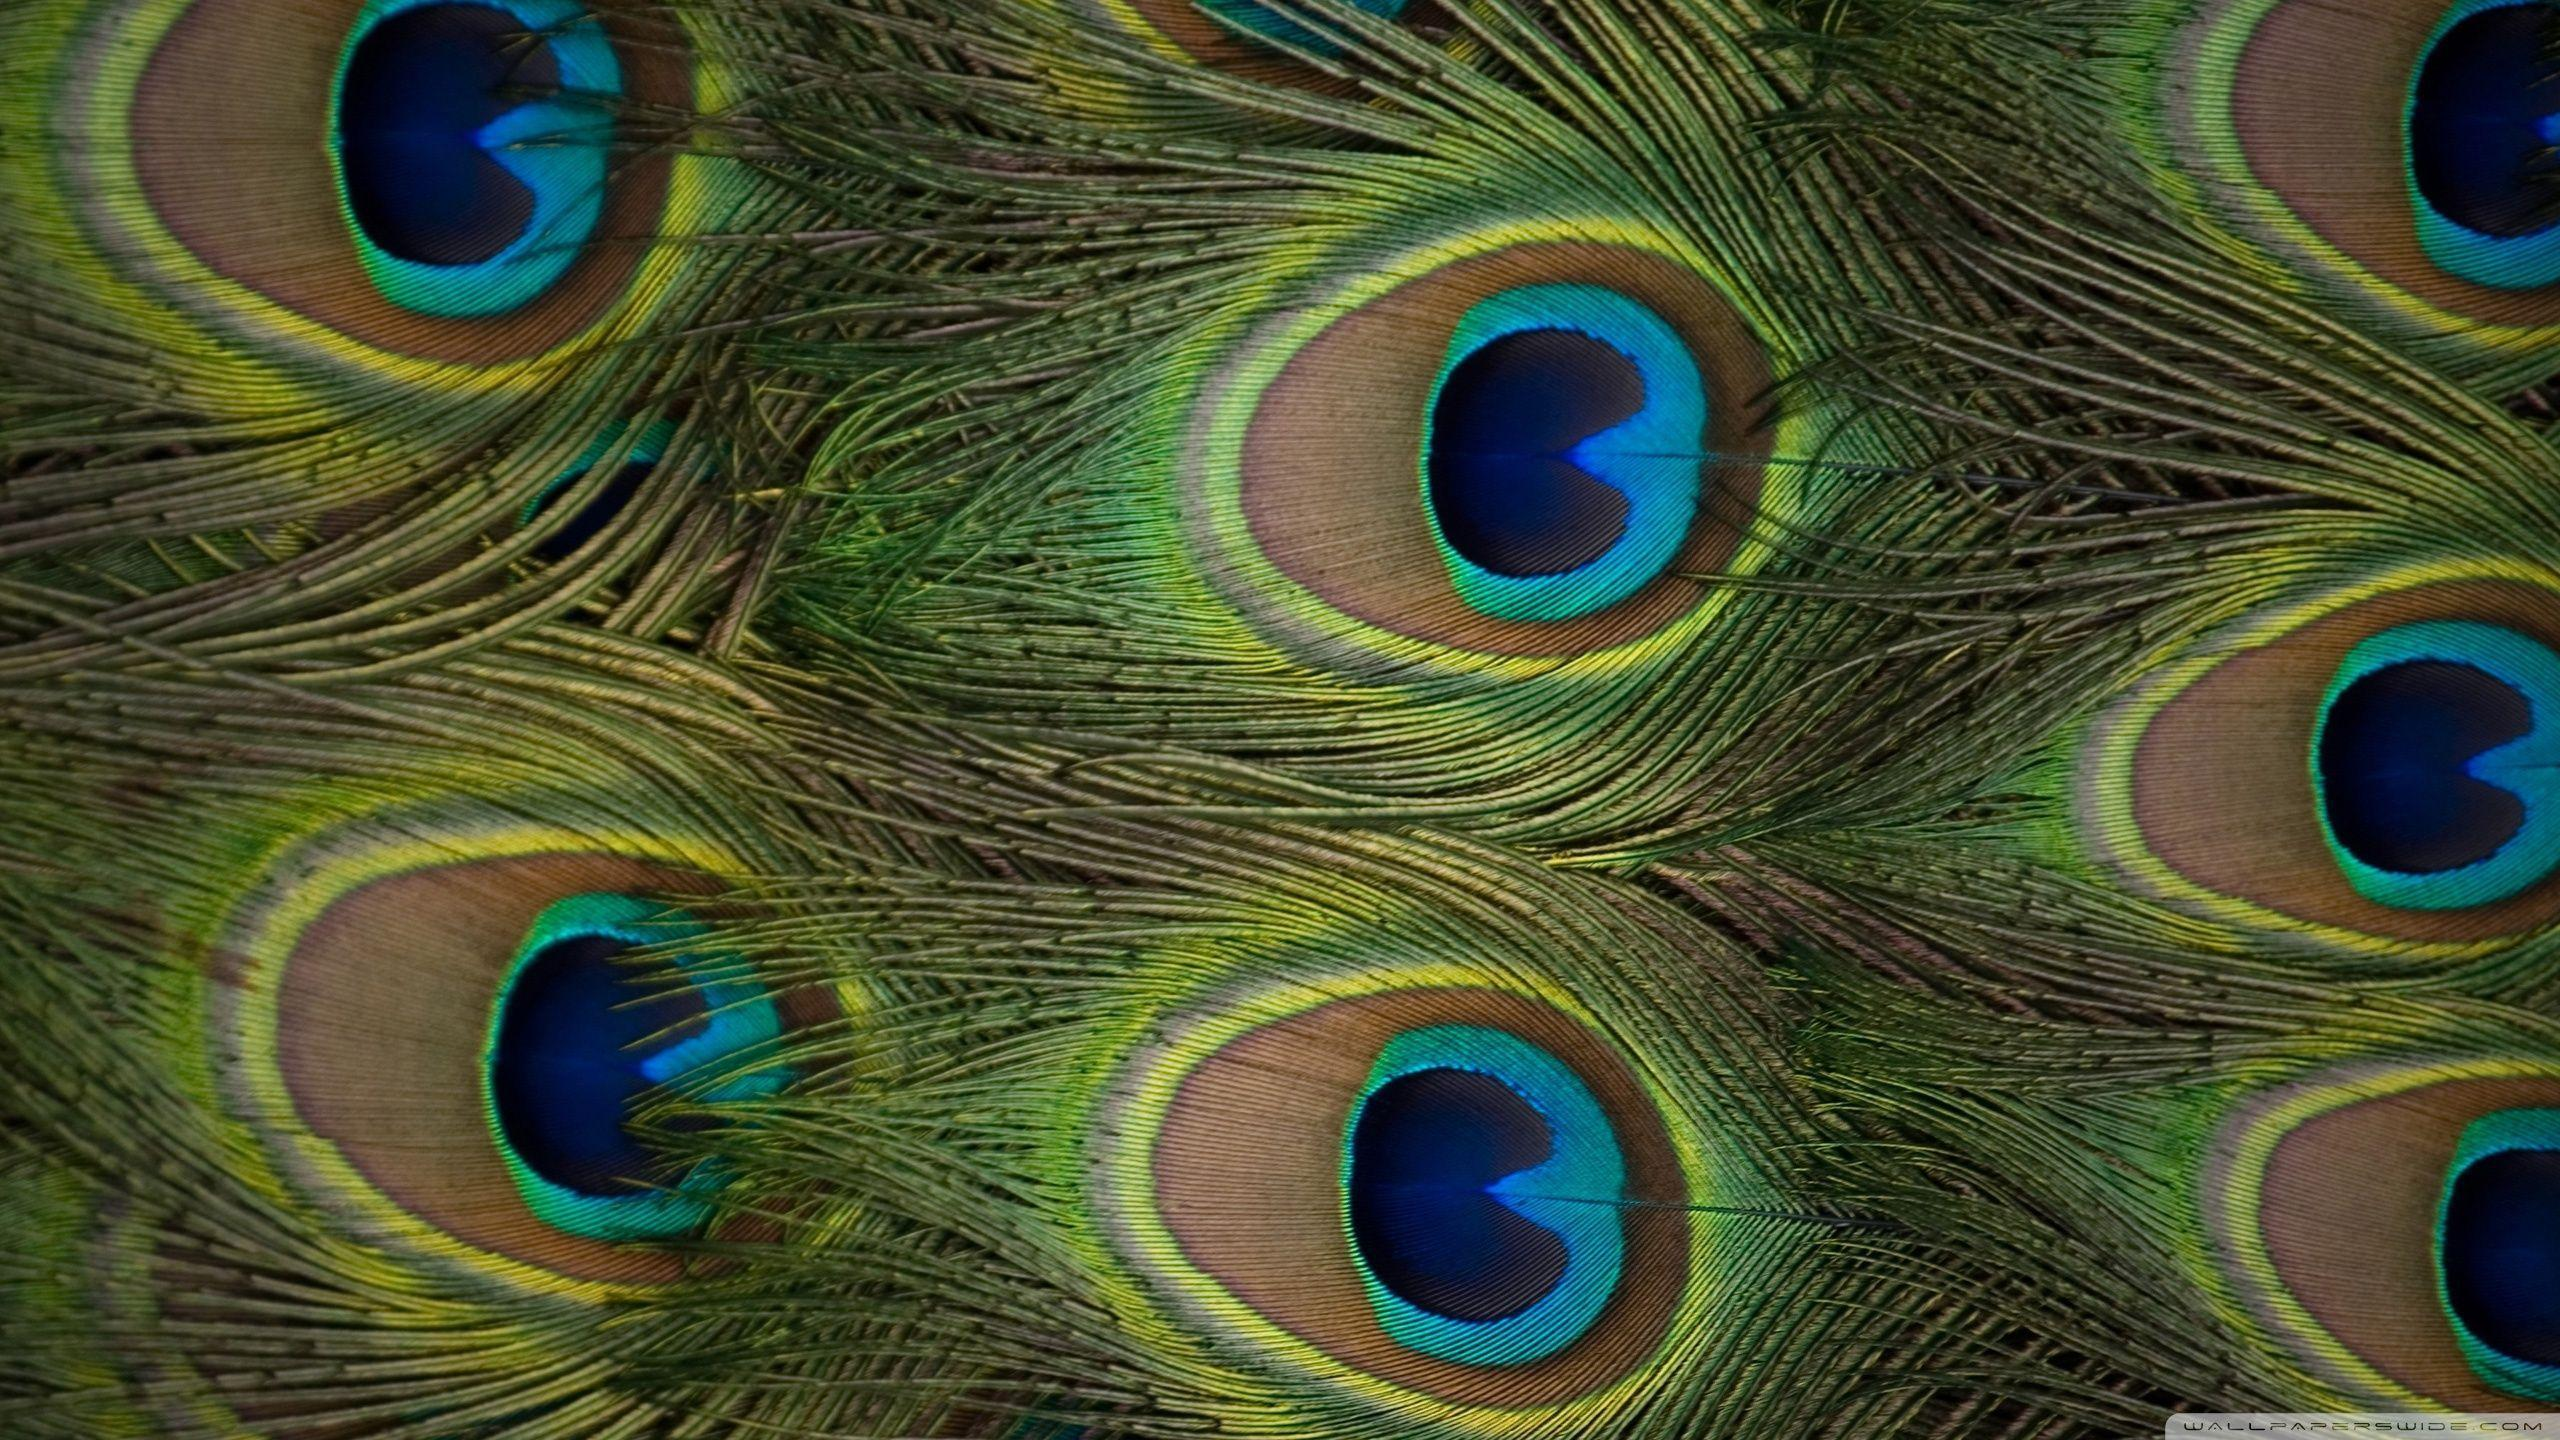 Wallpapers Of Peacock Feathers HD 2016 2560x1440